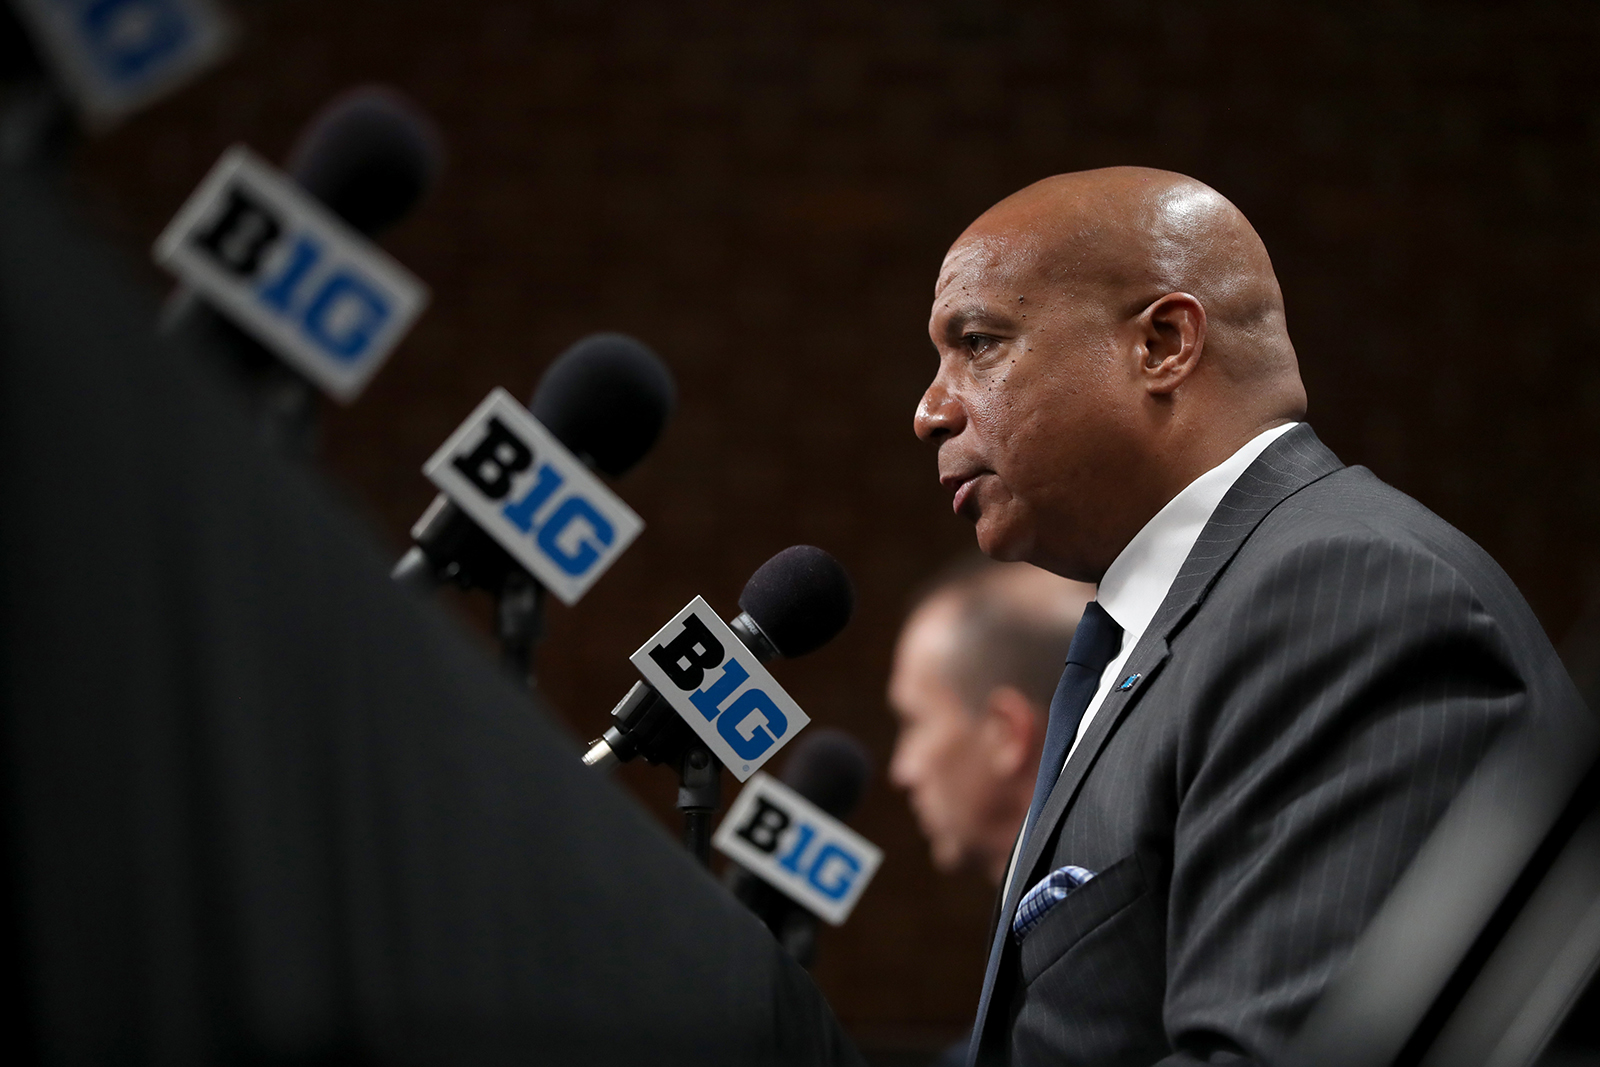 Big Ten athletes and coaches now get free access to the Calm app making good on Commissioner Kevin Warren's commitment to mental health